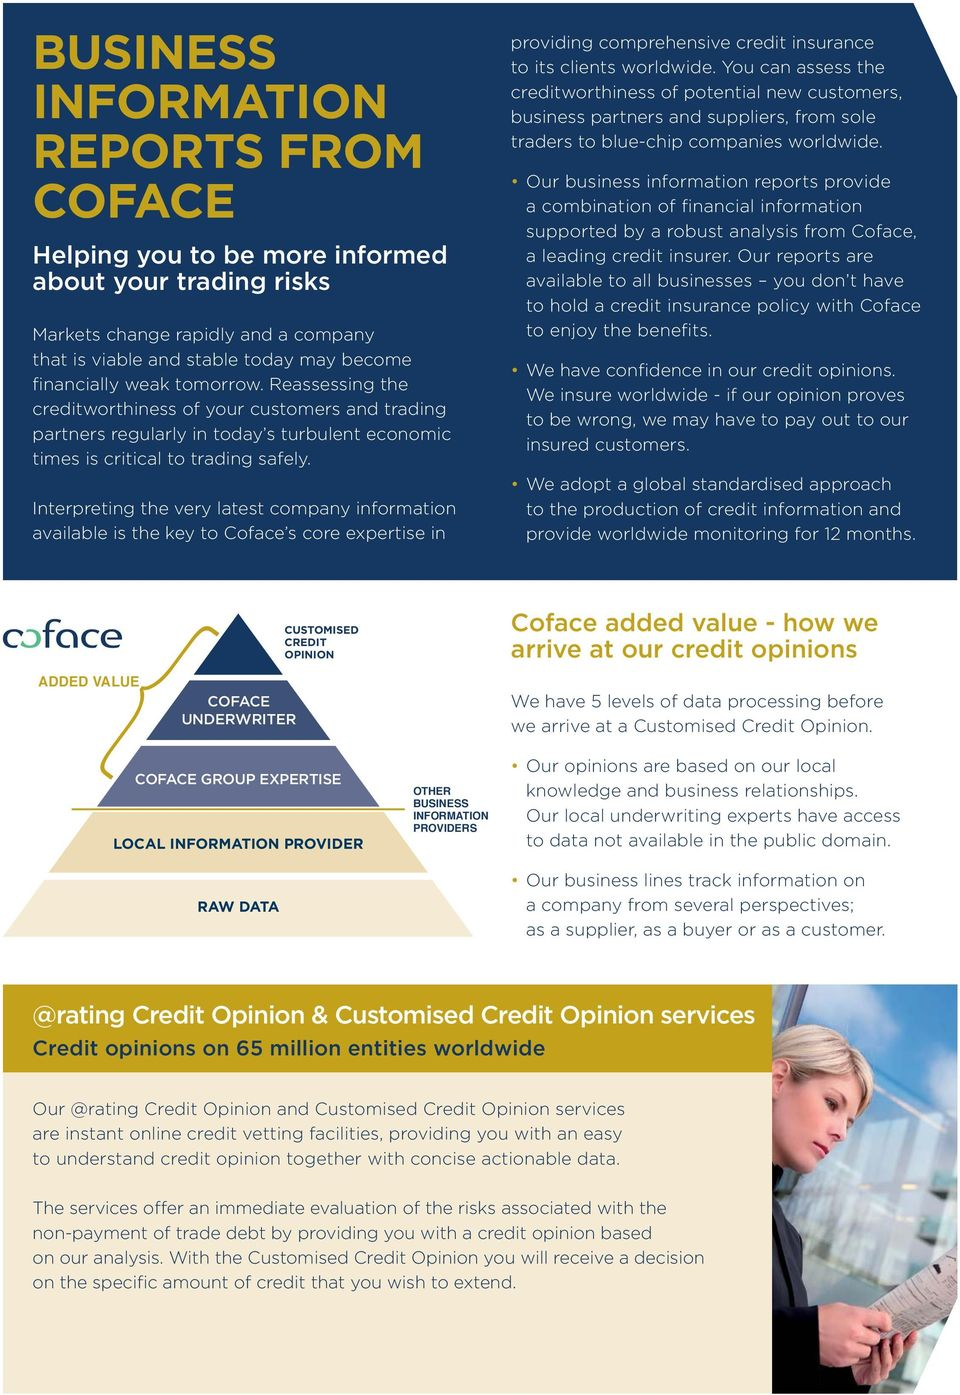 Interpreting the very latest company information available is the key to Coface s core expertise in providing comprehensive credit insurance to its clients worldwide.